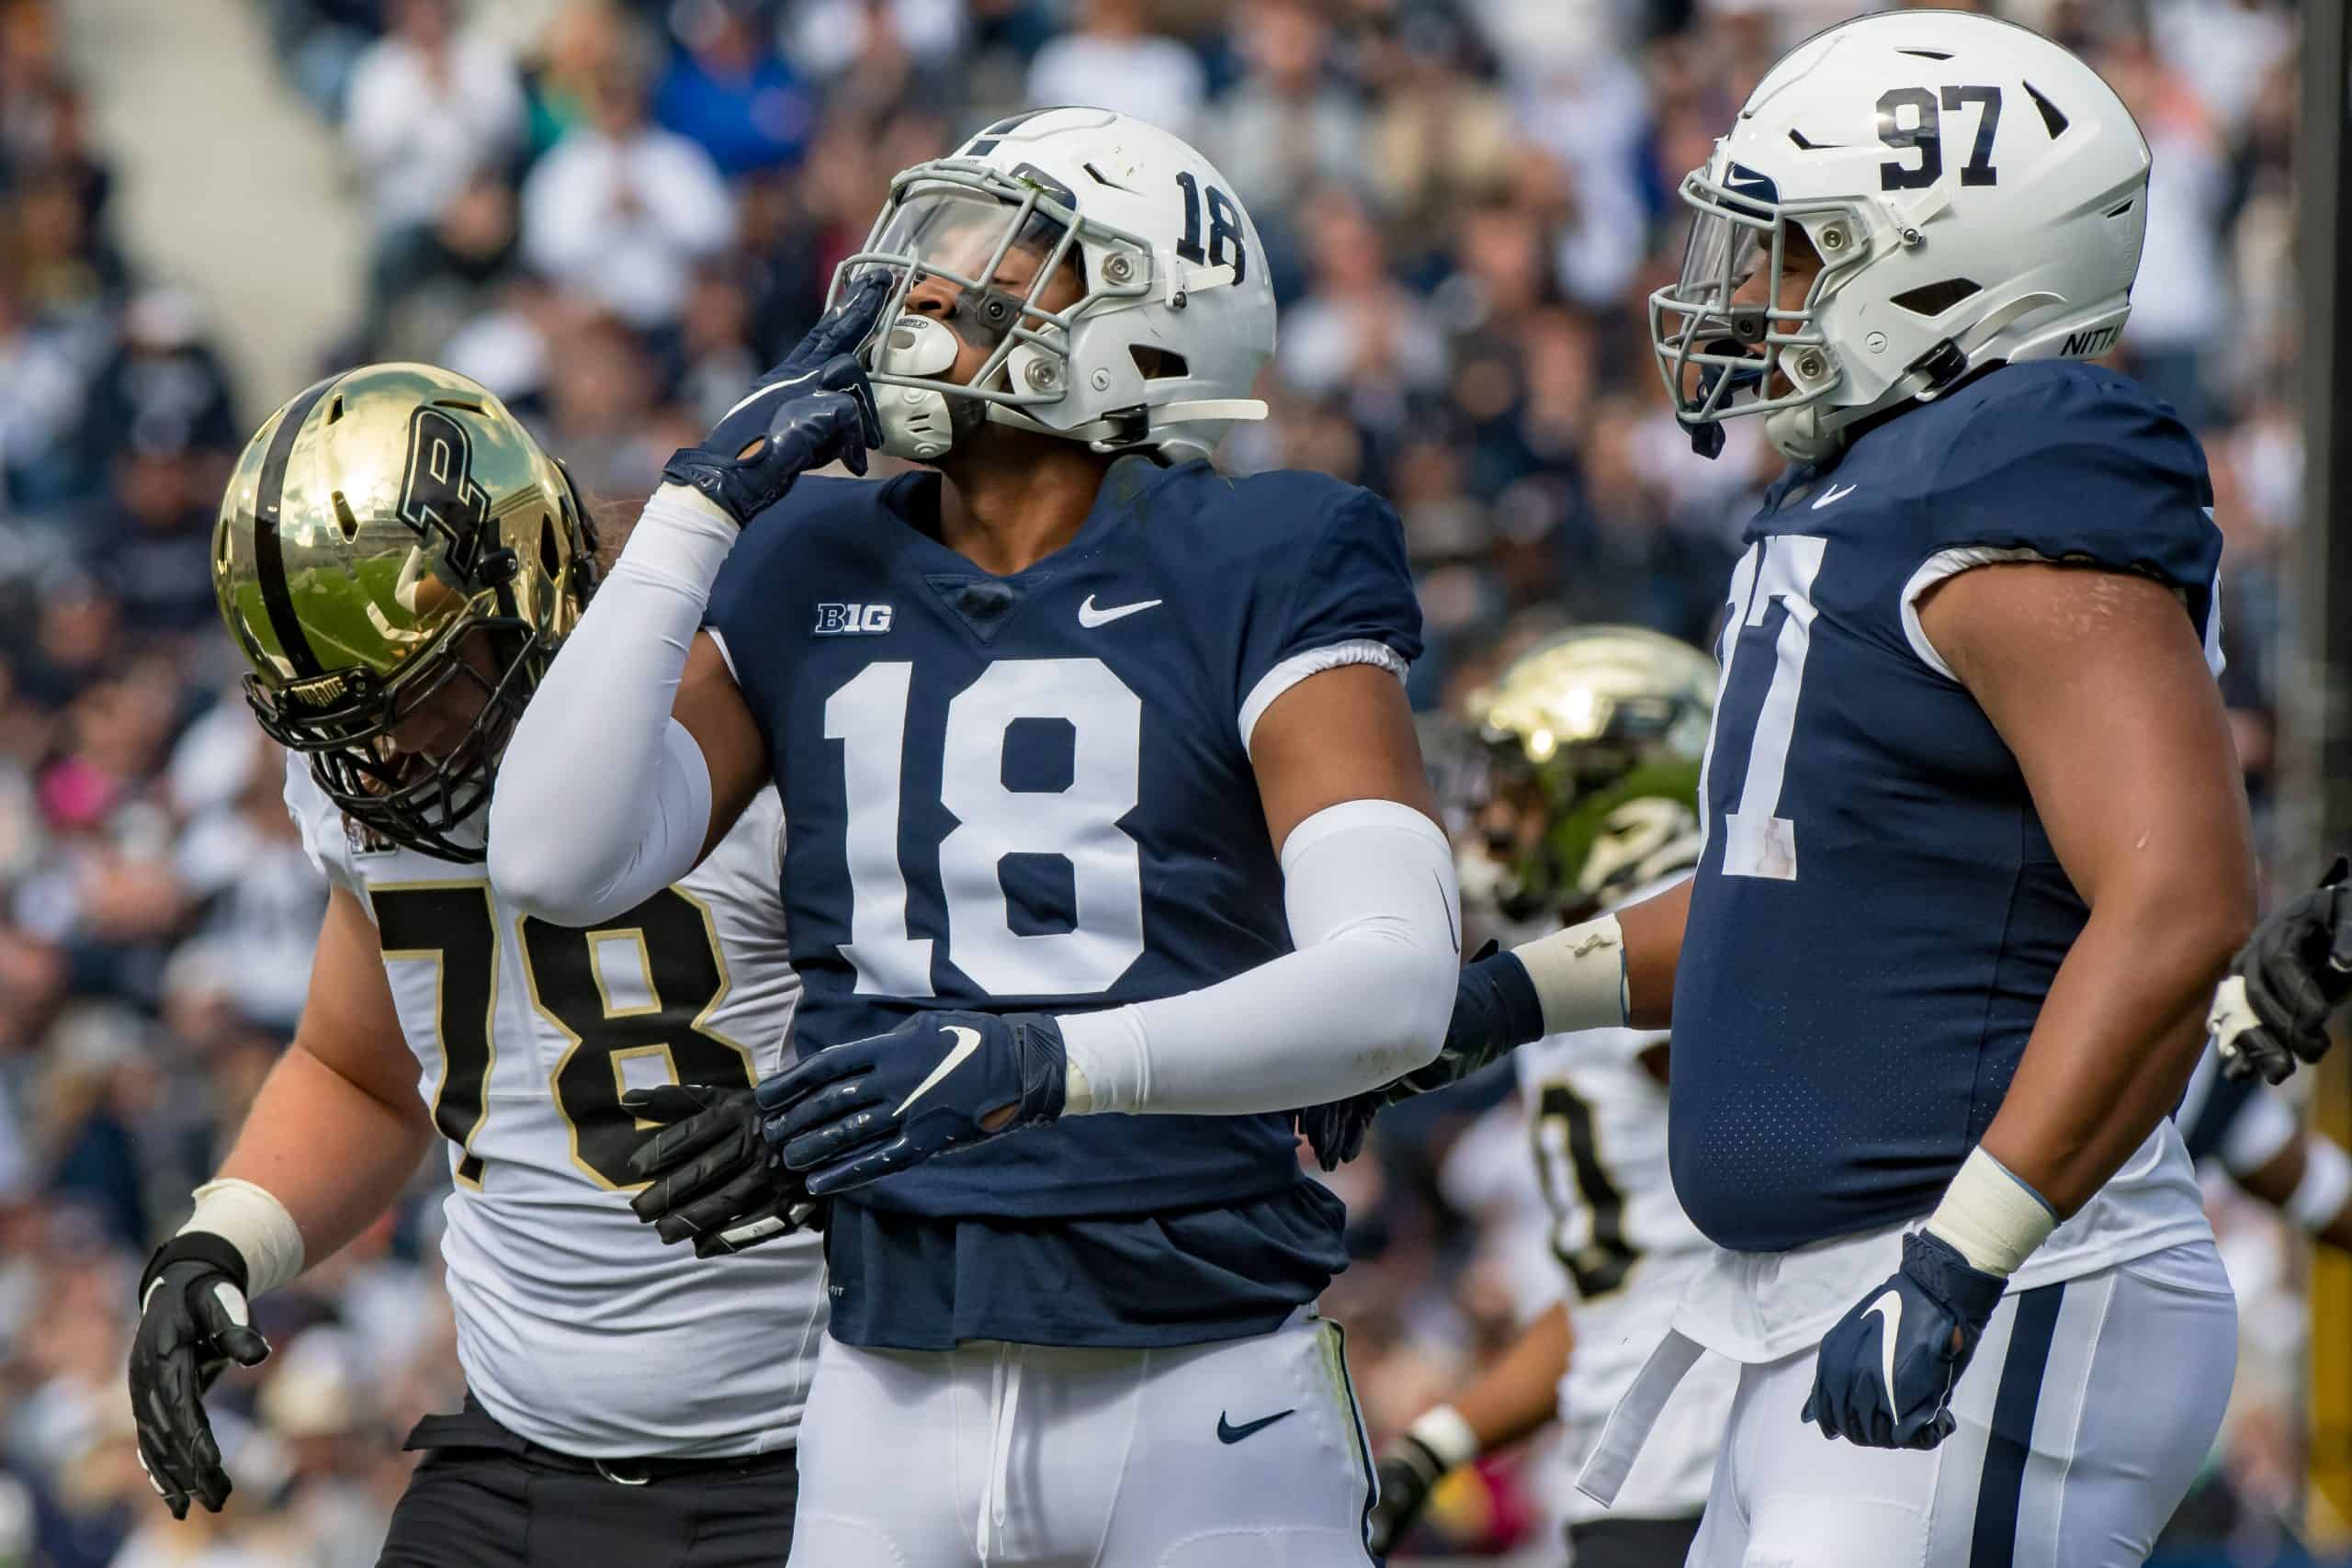 Can Penn State's Shaka Toney develop into a three-down EDGE rusher?